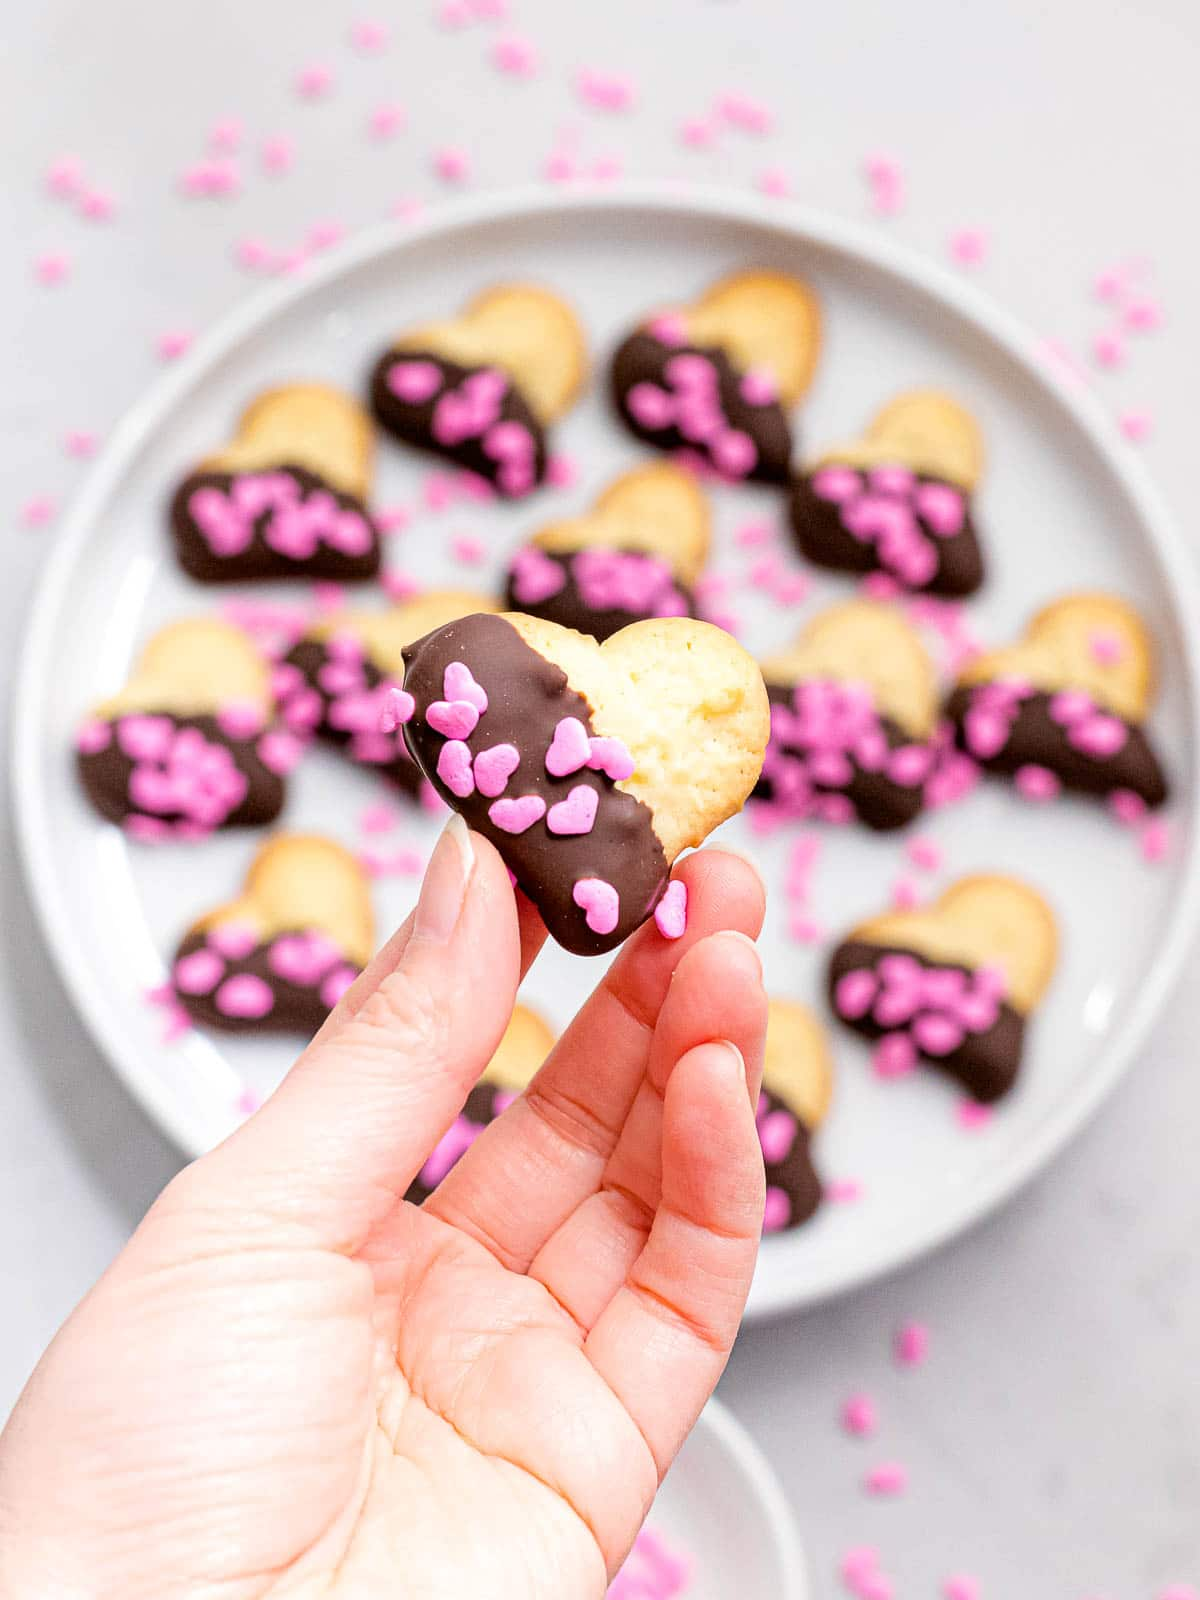 hand holding heart shaped Valentines day spritz cookie dipped in dark chocolate and decorated with pink sprinkles